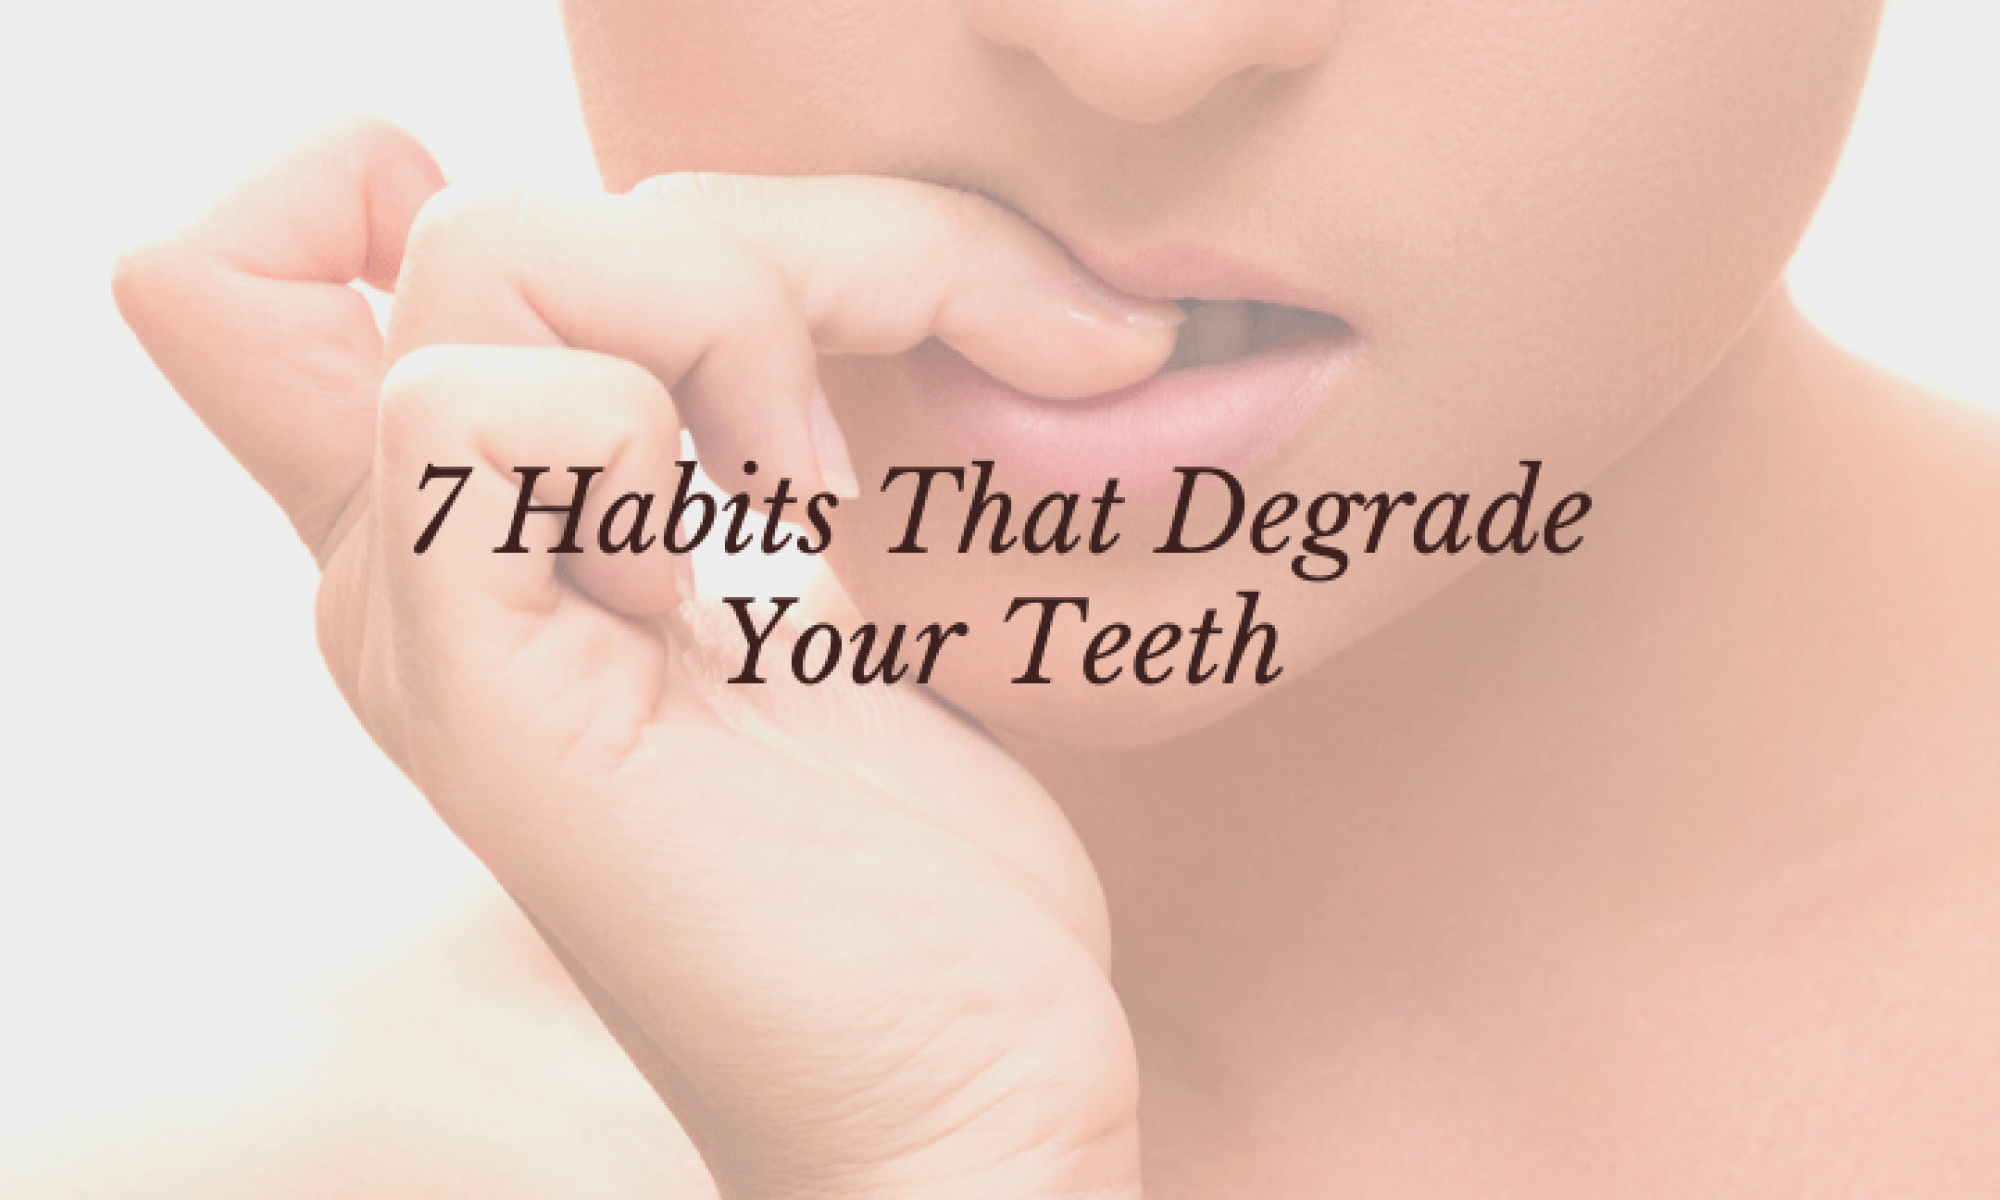 Habits That Degrade Your Teeth